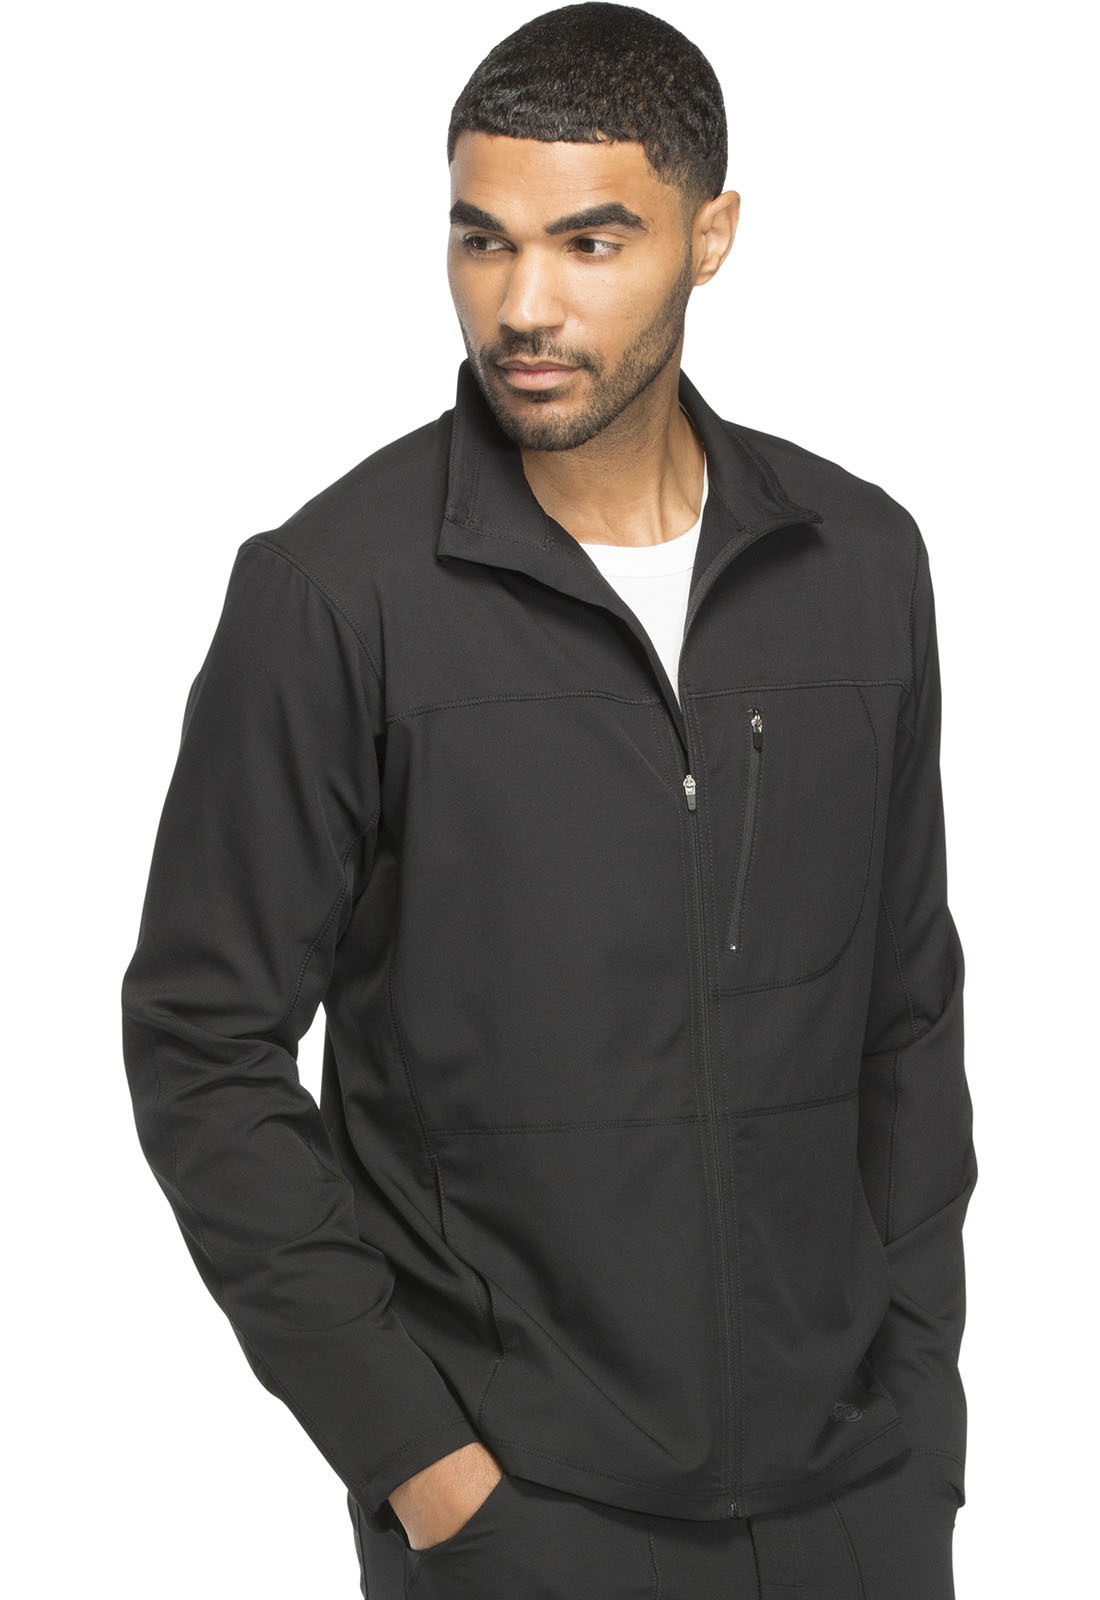 c7c988d81 Dickies Men's Zip Front Warm-up Jacket (Regular) in Black from Dickies  Medical